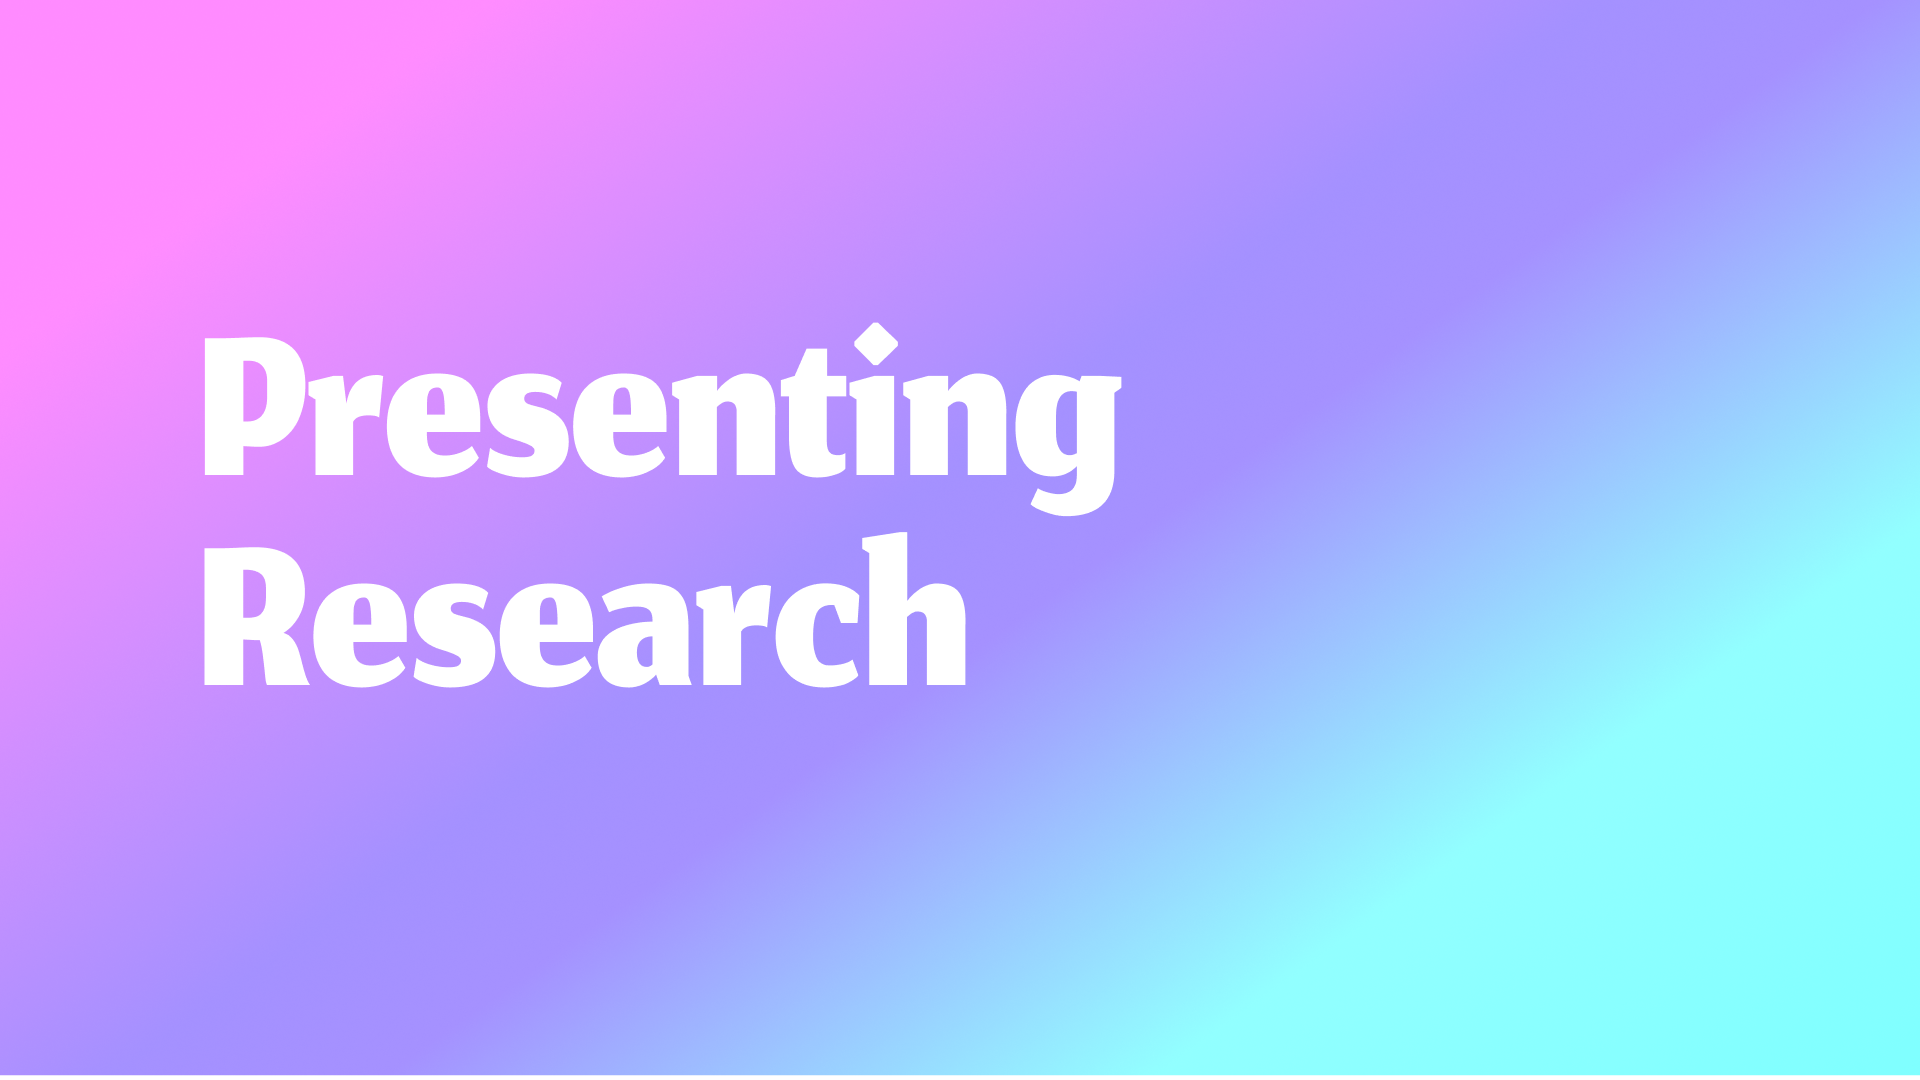 Presenting Research